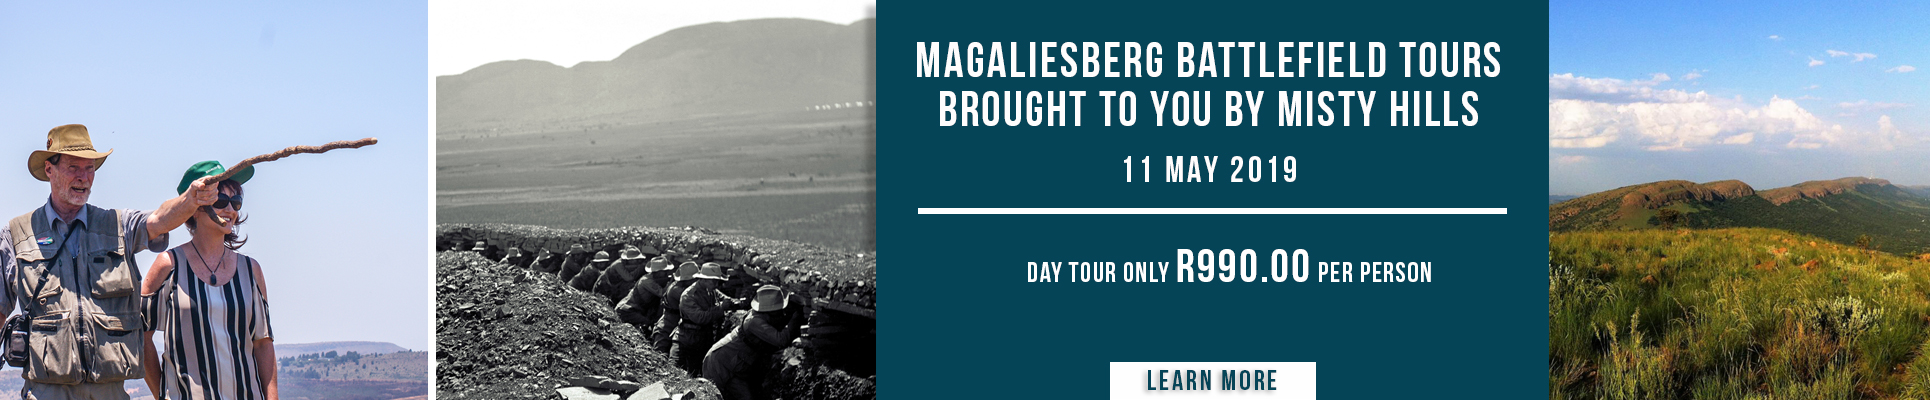 Misty Hills Country Hotel Magaliesberg Battlefields Tours Gauteng Muldersdrift 2019